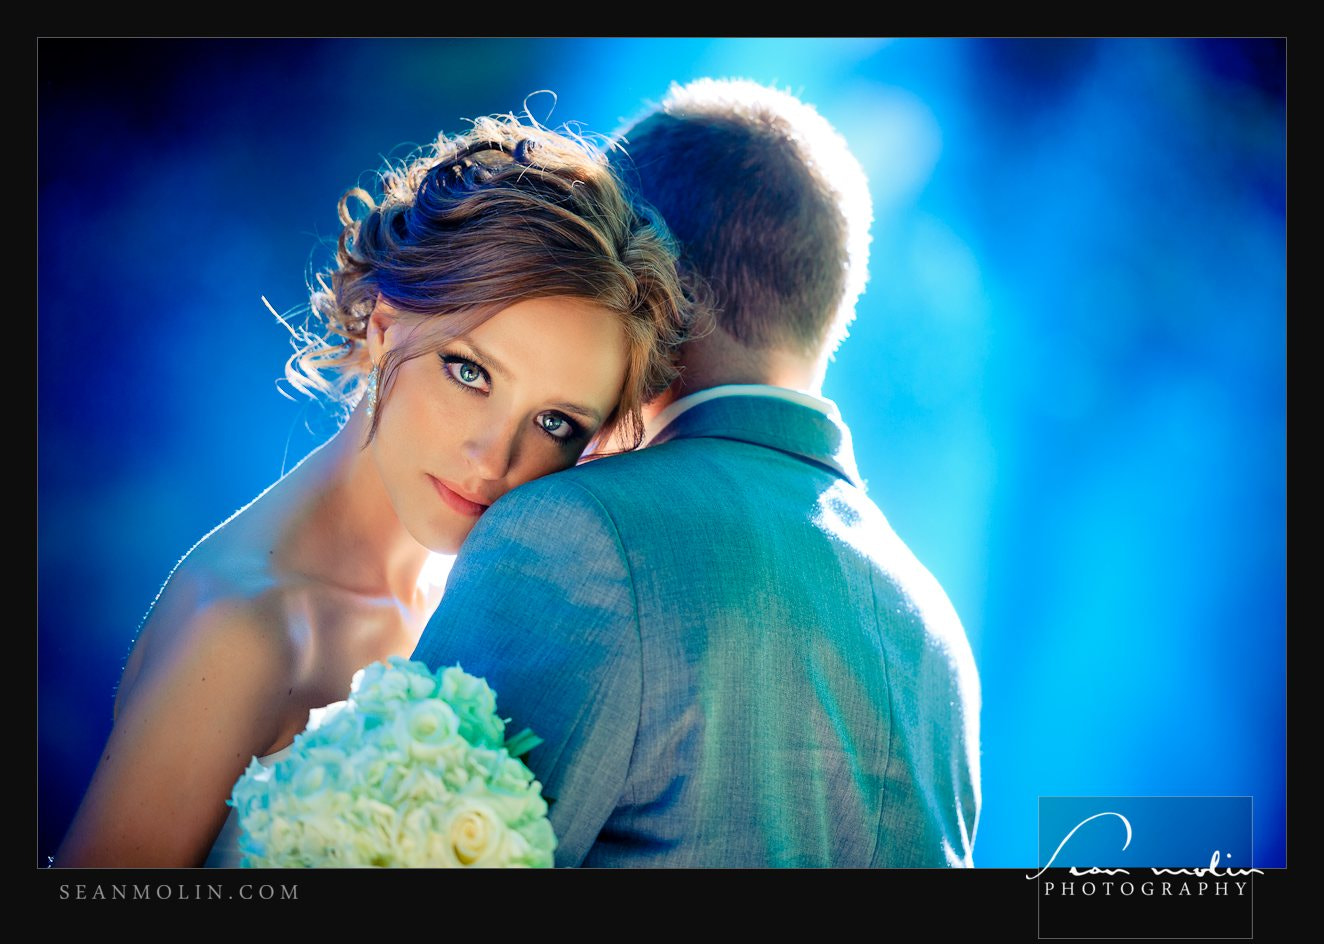 Photograph Behind Blue Eyes by Sean Molin on 500px